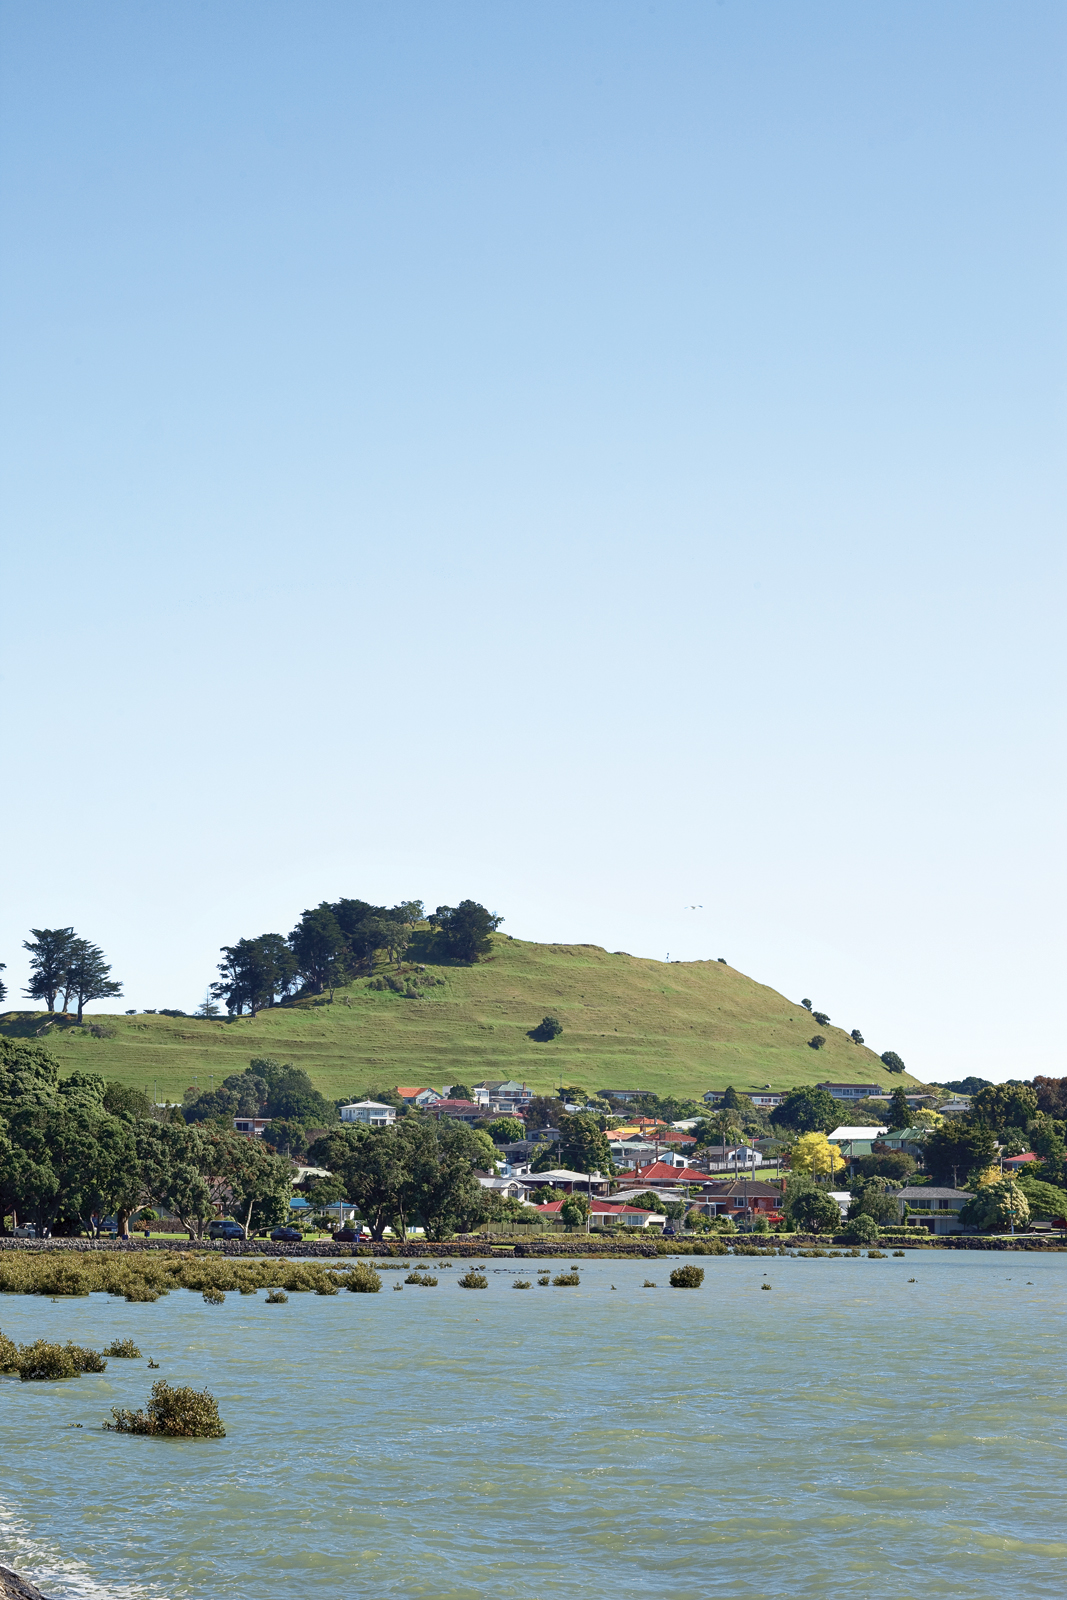 Auckland's Mangere Mountain is a dormant volcano that rises above the shore of the Manukau Harbor. It was once a site of strategic importance to early Maori tribes, and development is now prohibited on its cone.